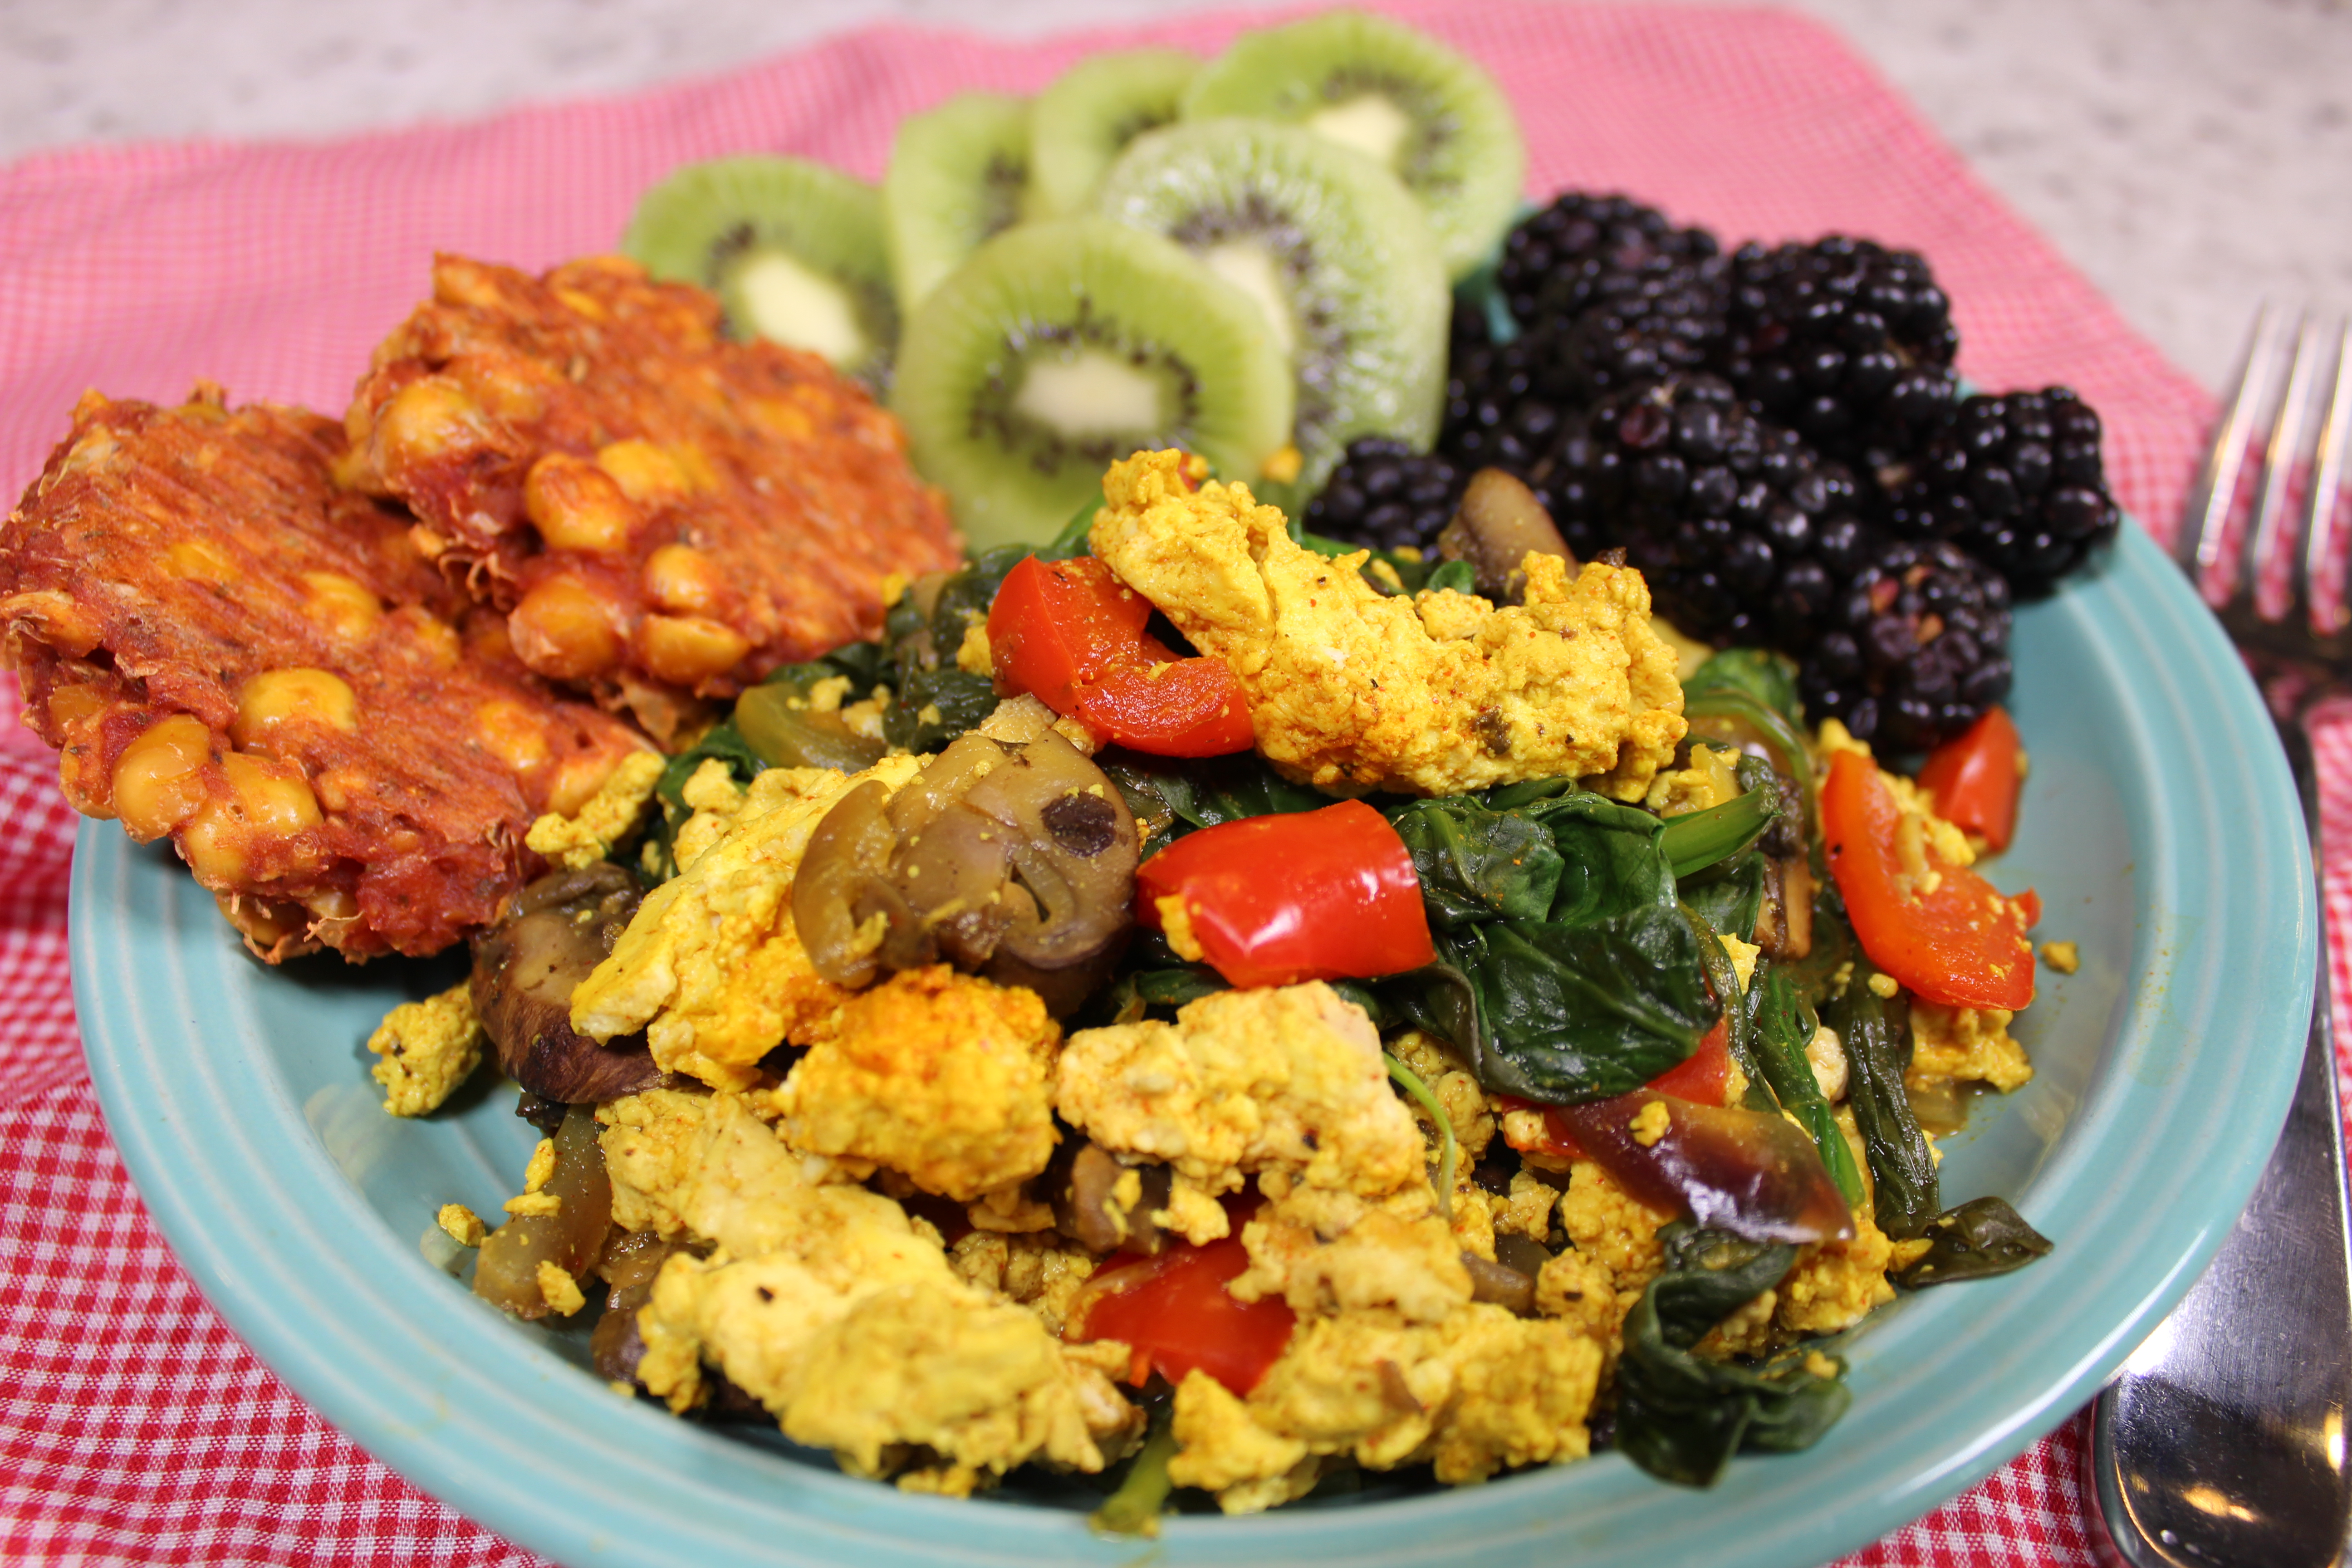 High Protein Plant Based Breakfast The Whole Food Plant Based Cooking Show